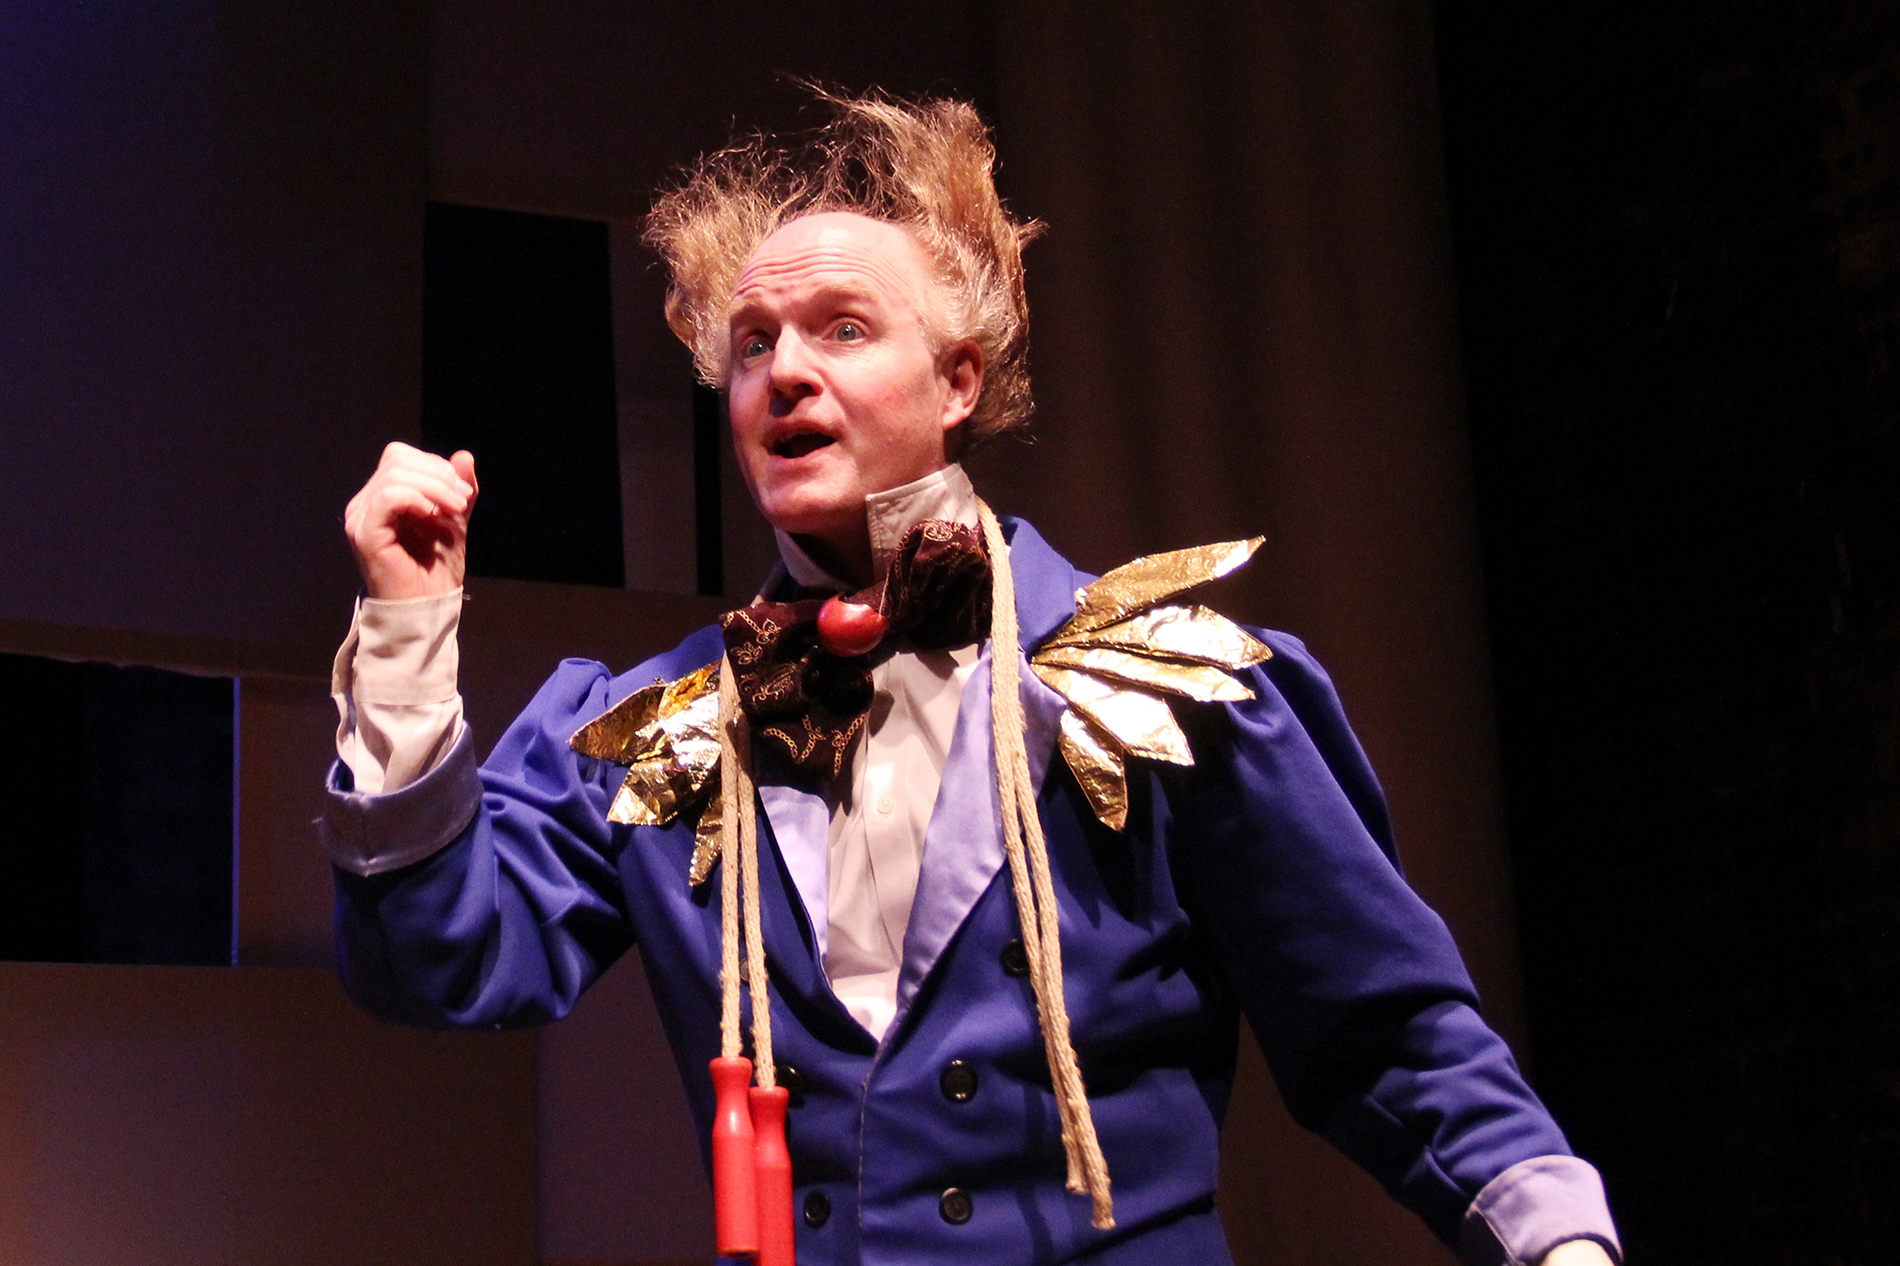 a performer wearing a blue jacket